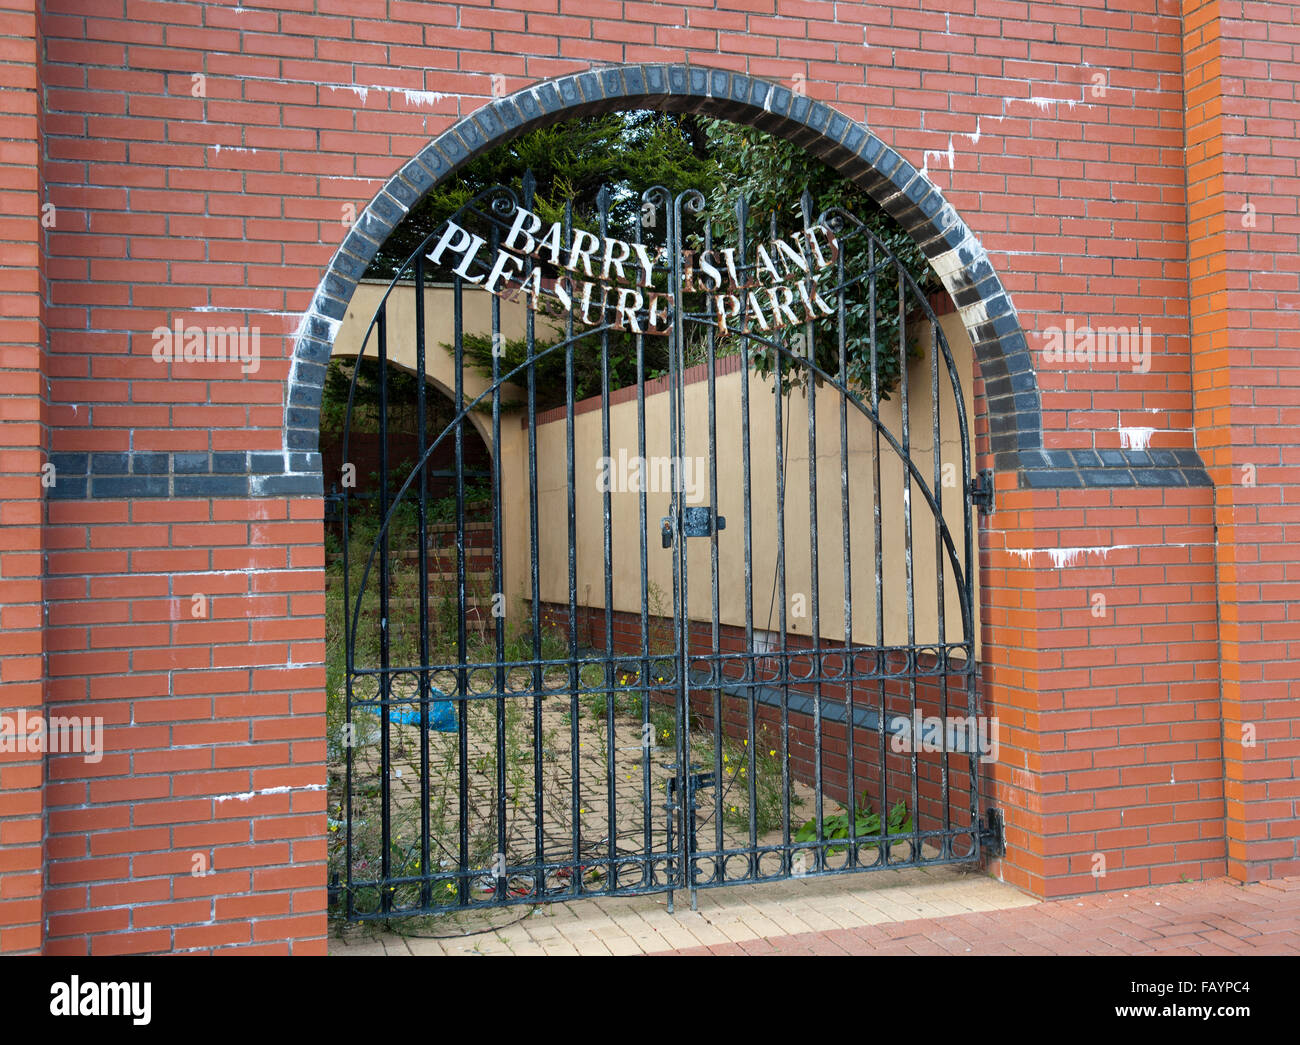 Metal Gates at the entrance to Barry Island Pleasure Park, Barry Island, Vale of Glamorgan, South Wales, UK Stock Photo